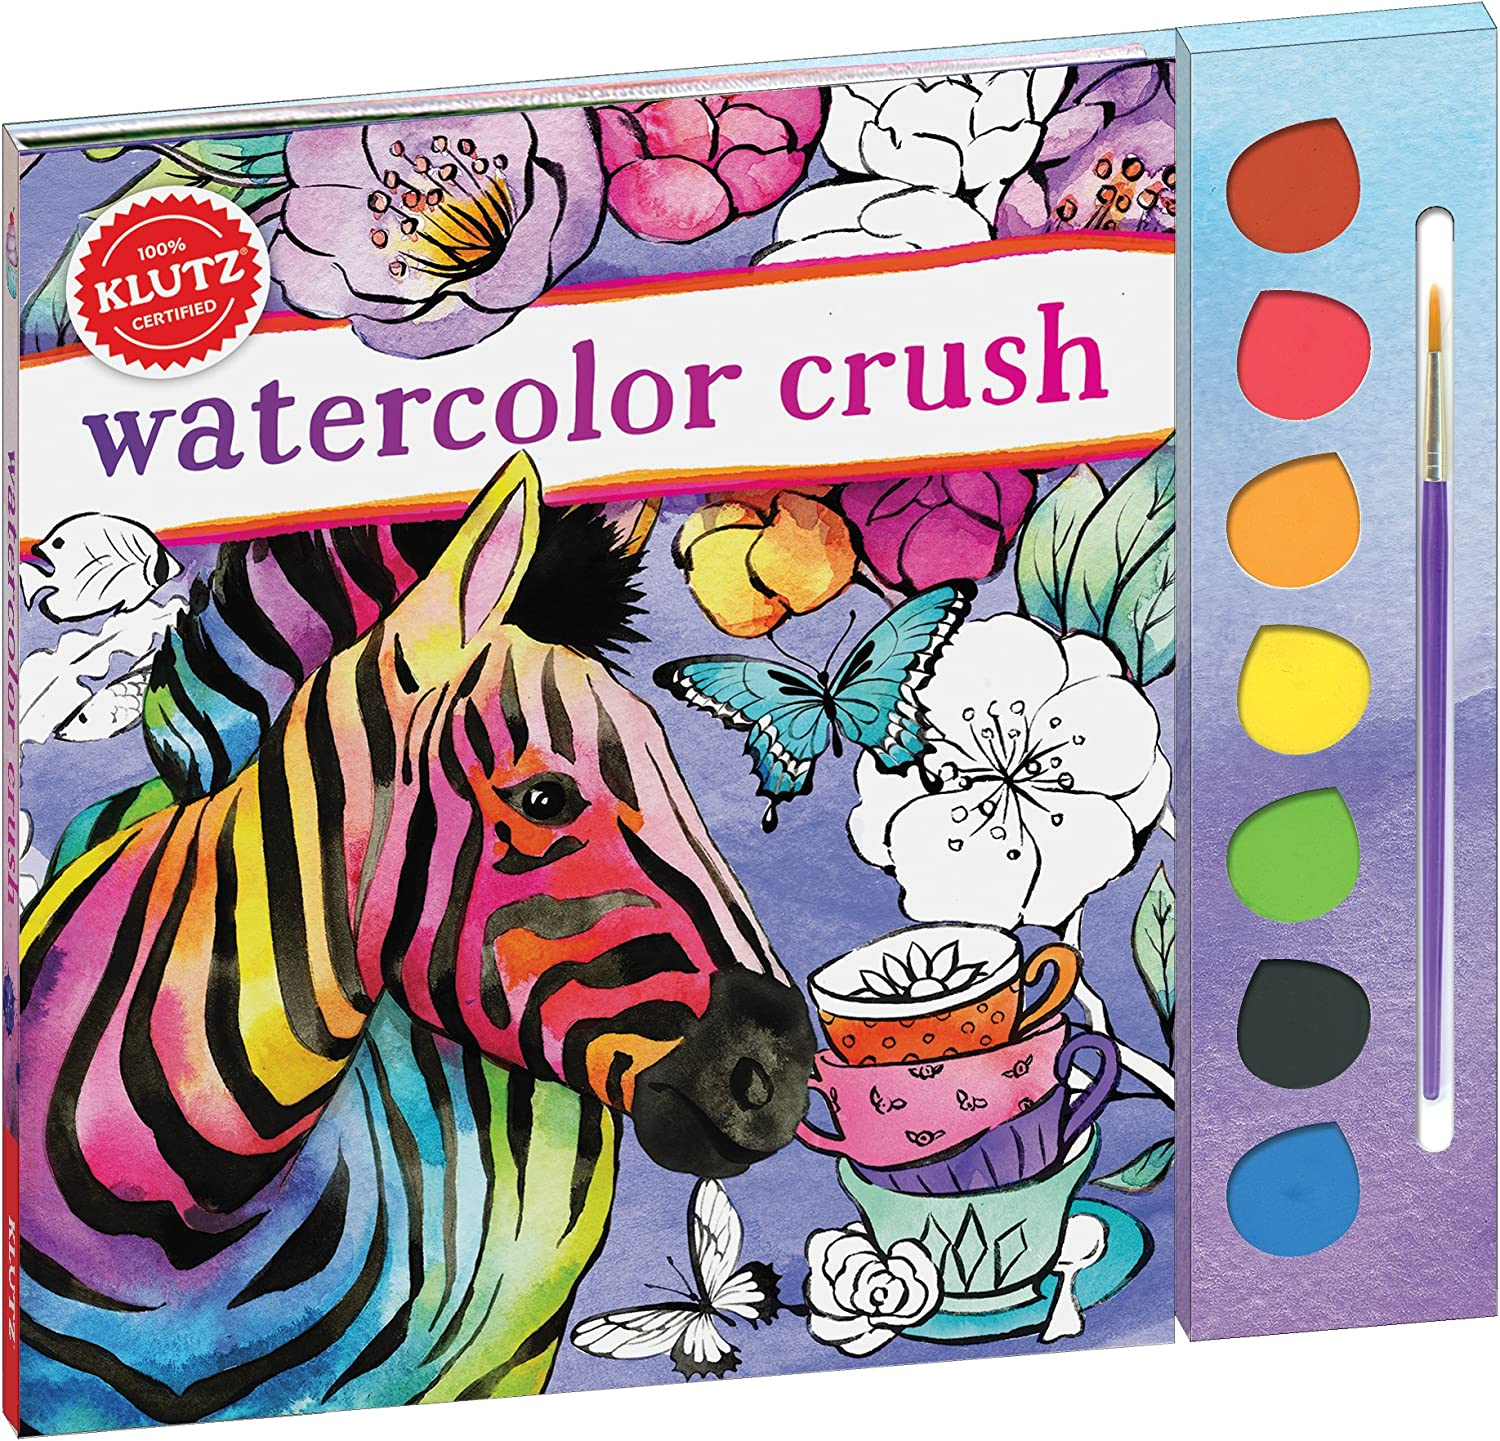 sold out KLUTZ Watercolor Crush Great interest Toy